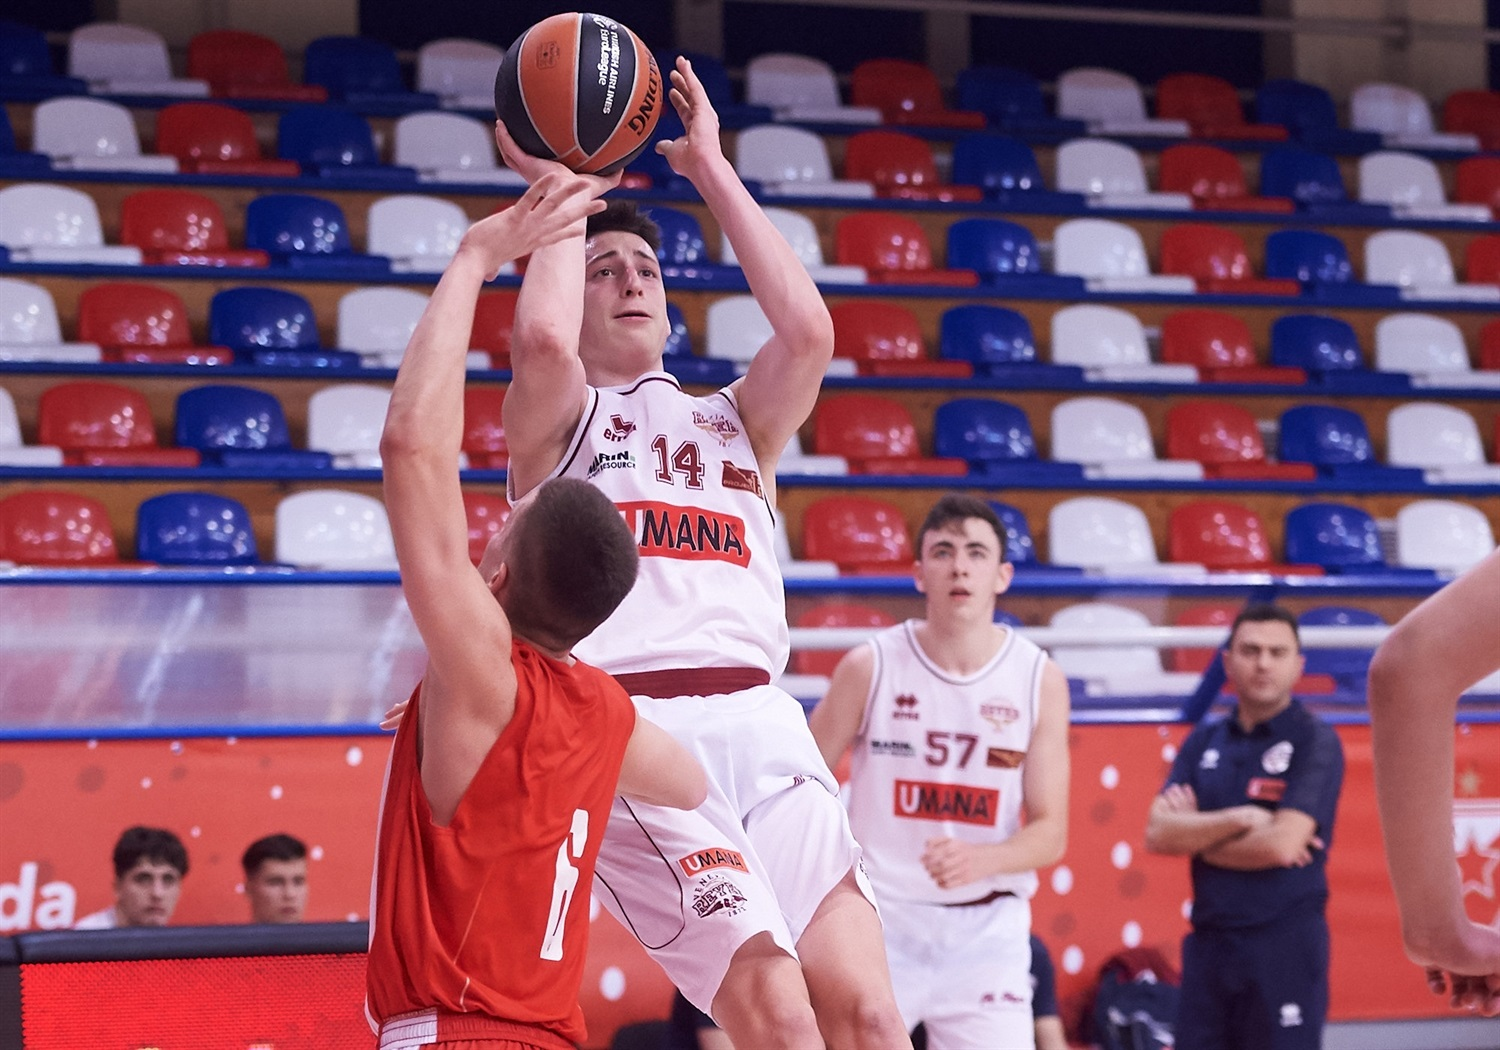 Davide Casarin - U18 Umana Reyer Venice - ANGT Belgrade 2019 (photo Dragoslav Zarkovic - Zvezda) - JT18